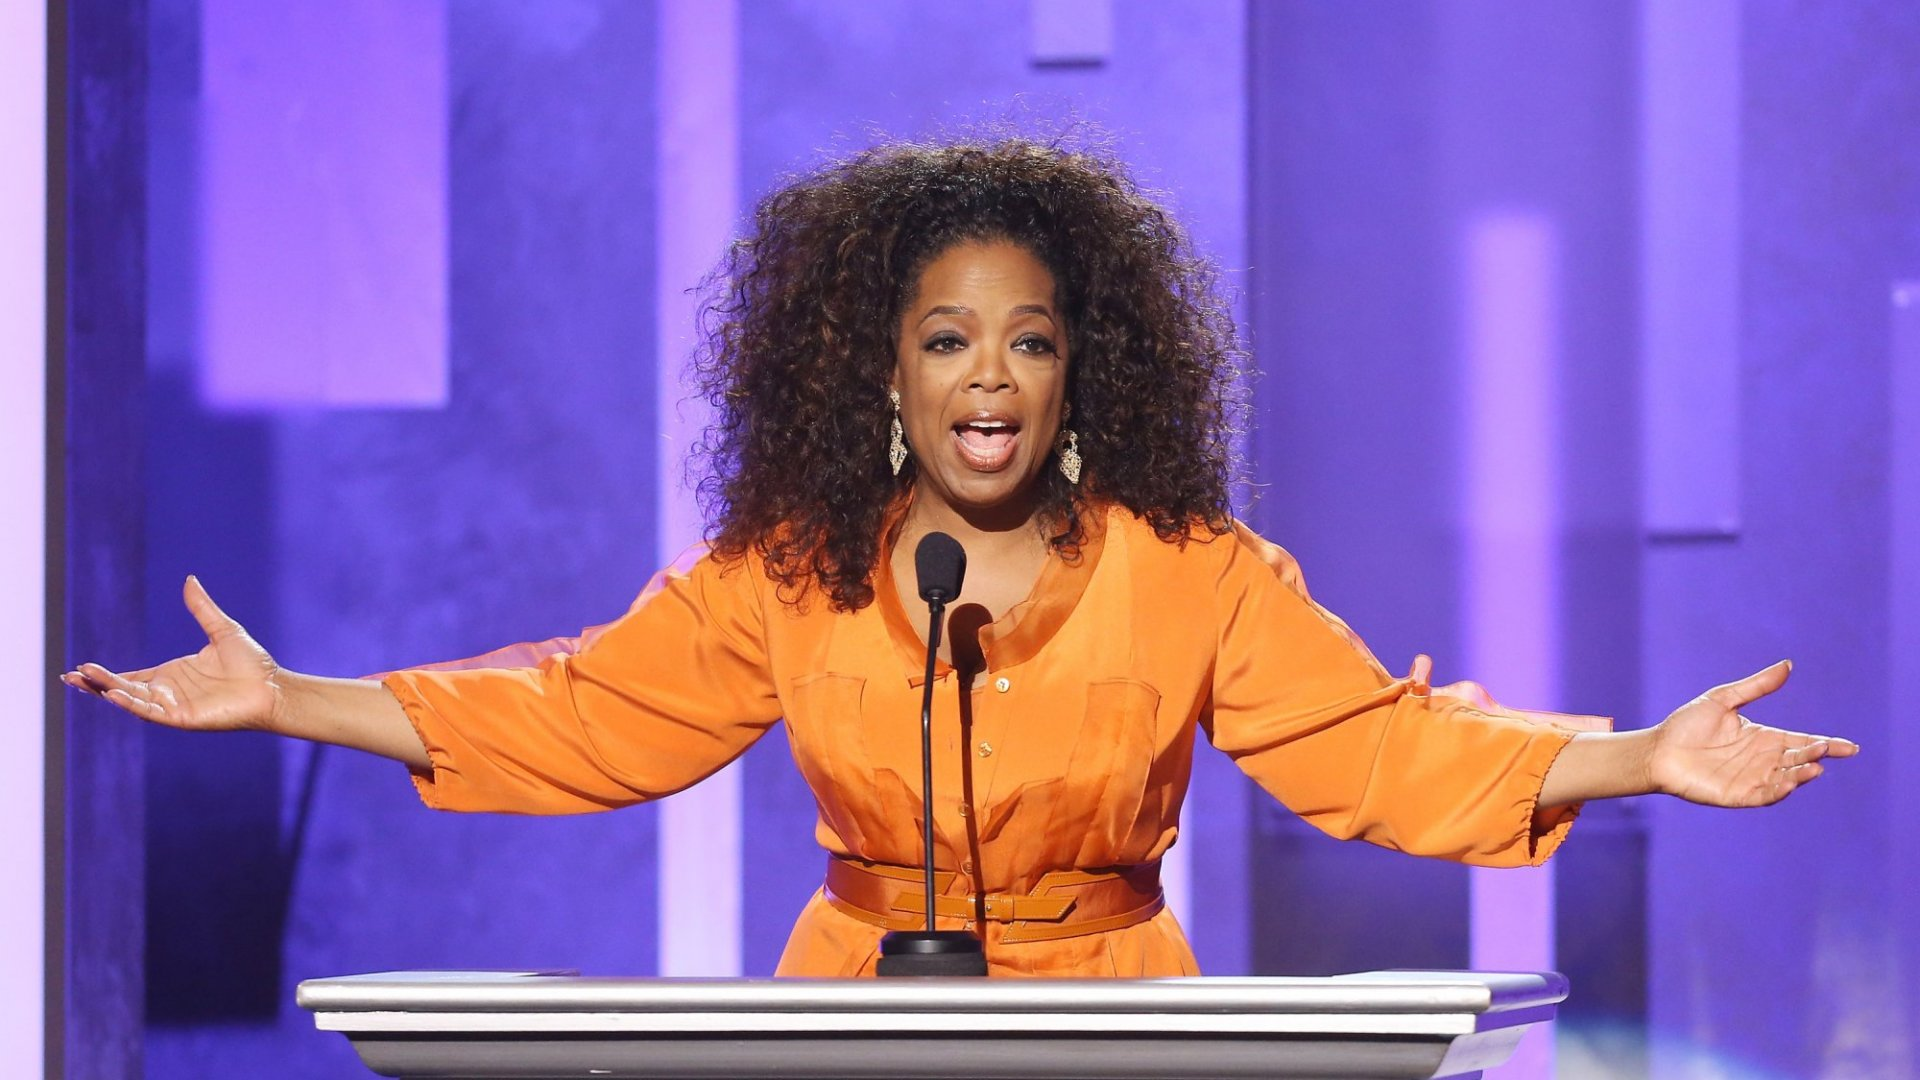 5 Tips From Oprah Winfrey on Getting Over Failure